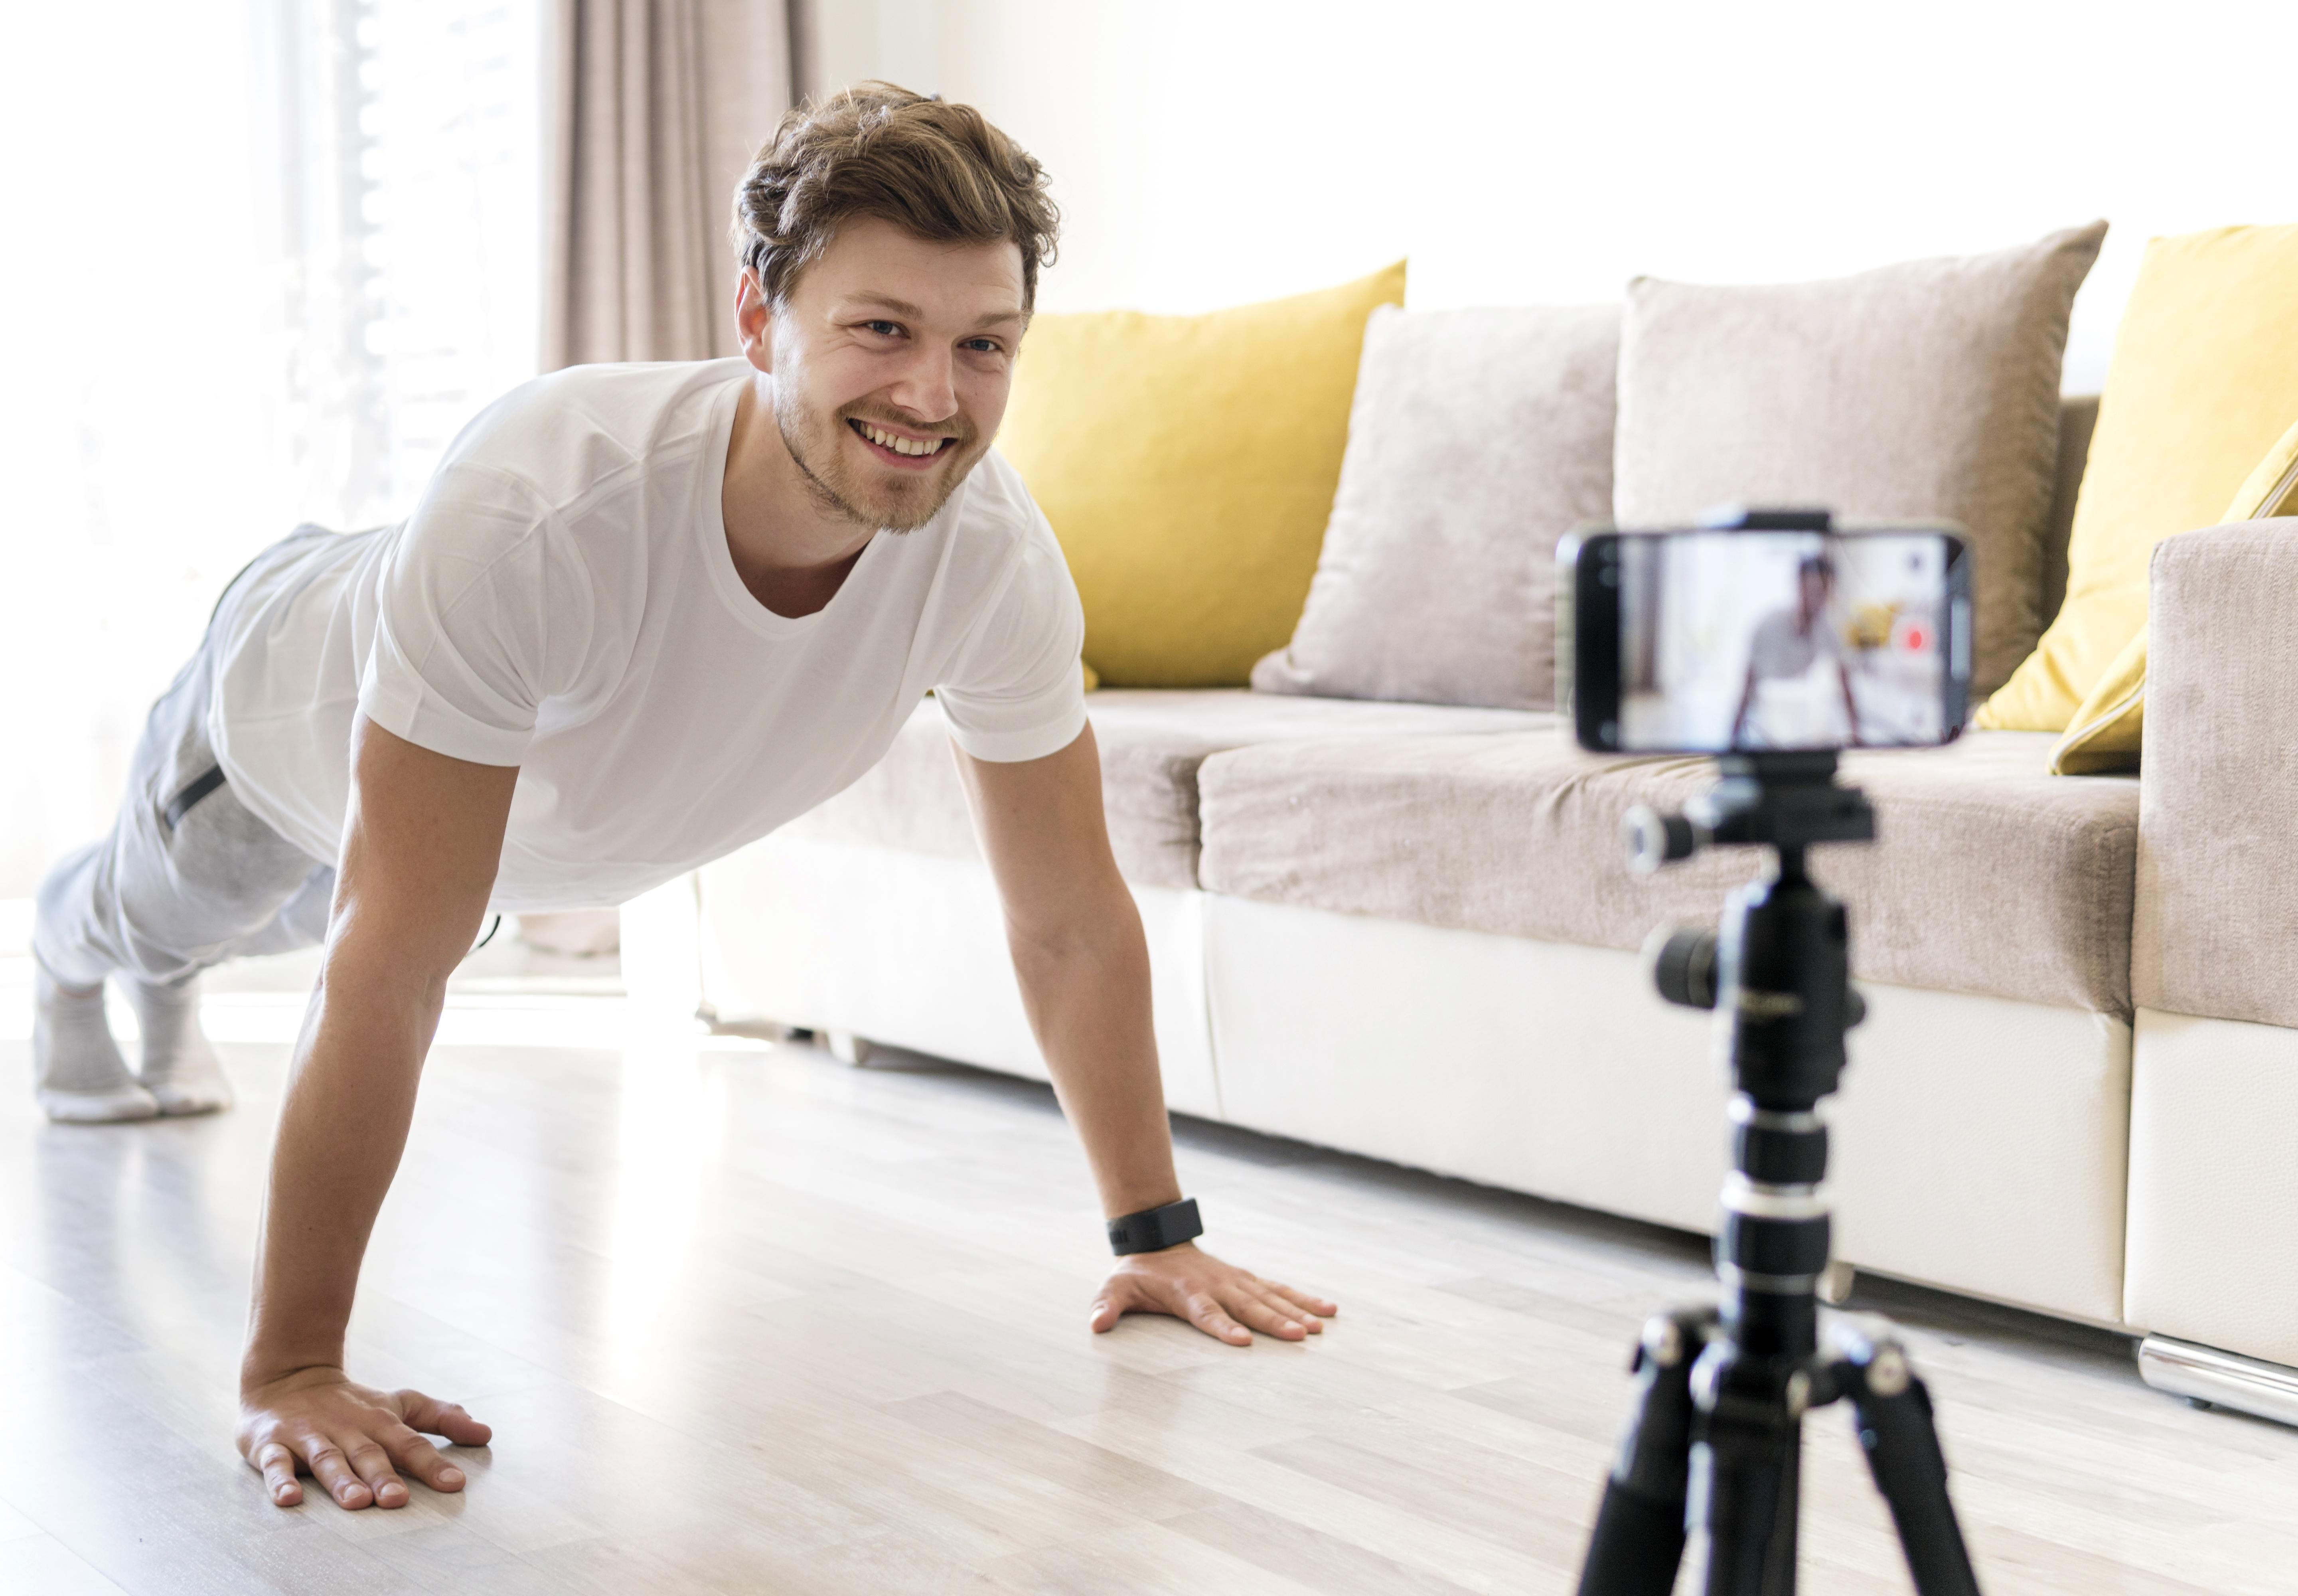 Types of videos for online courses